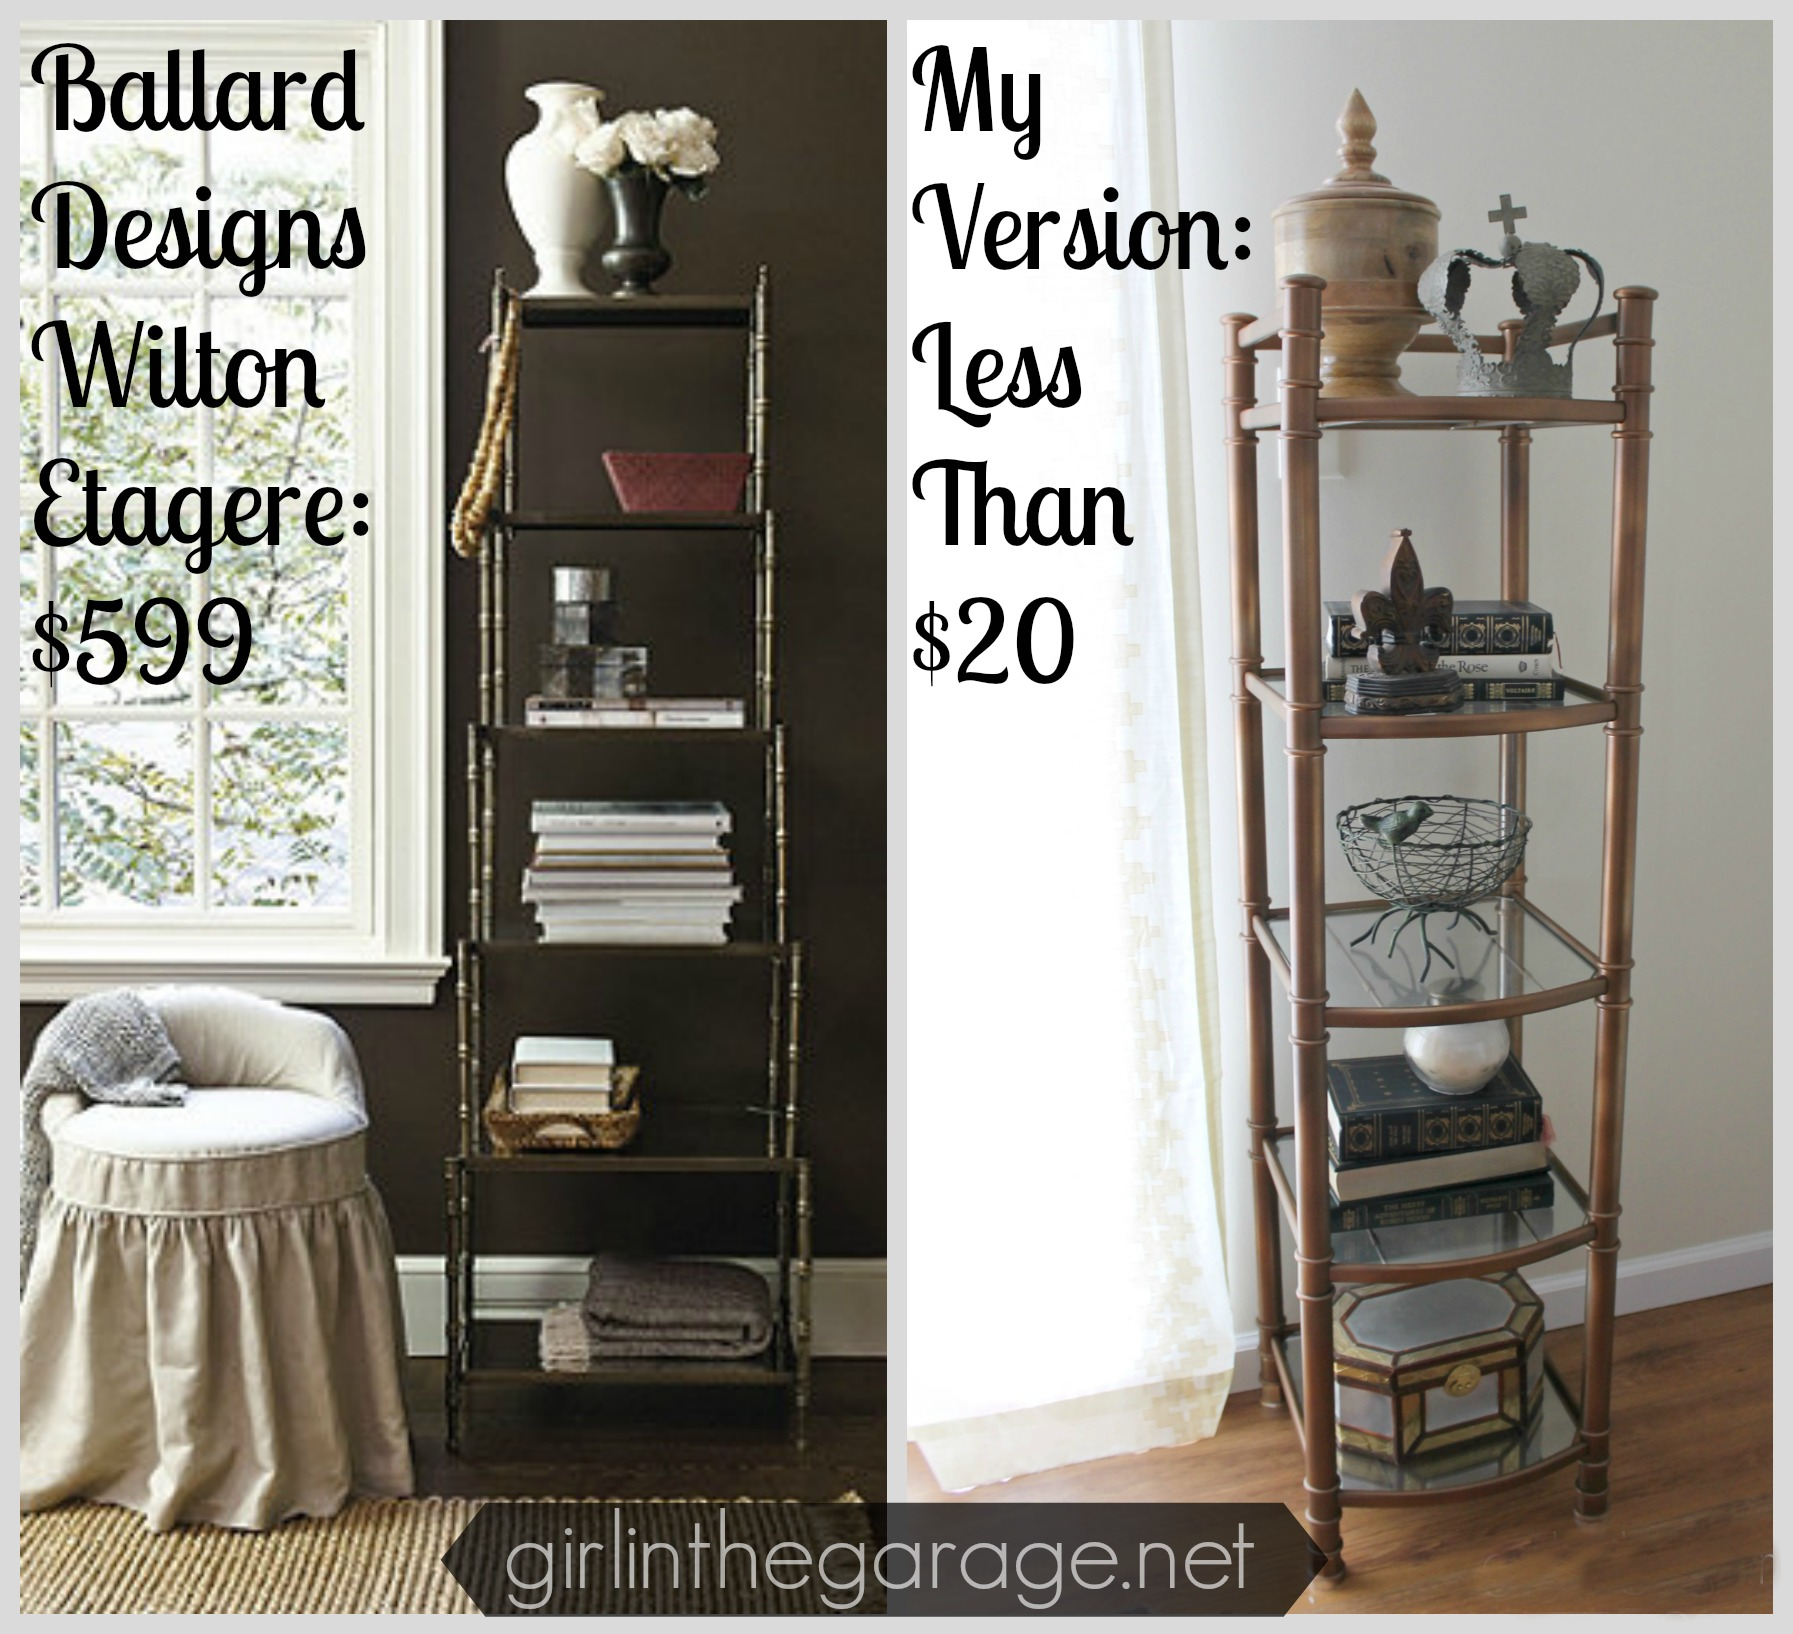 Ballard designs inspired tower makeover rock your knockoff tour ballard designs inspired tower makeover rock your knockoff tour girlinthegarage solutioingenieria Image collections